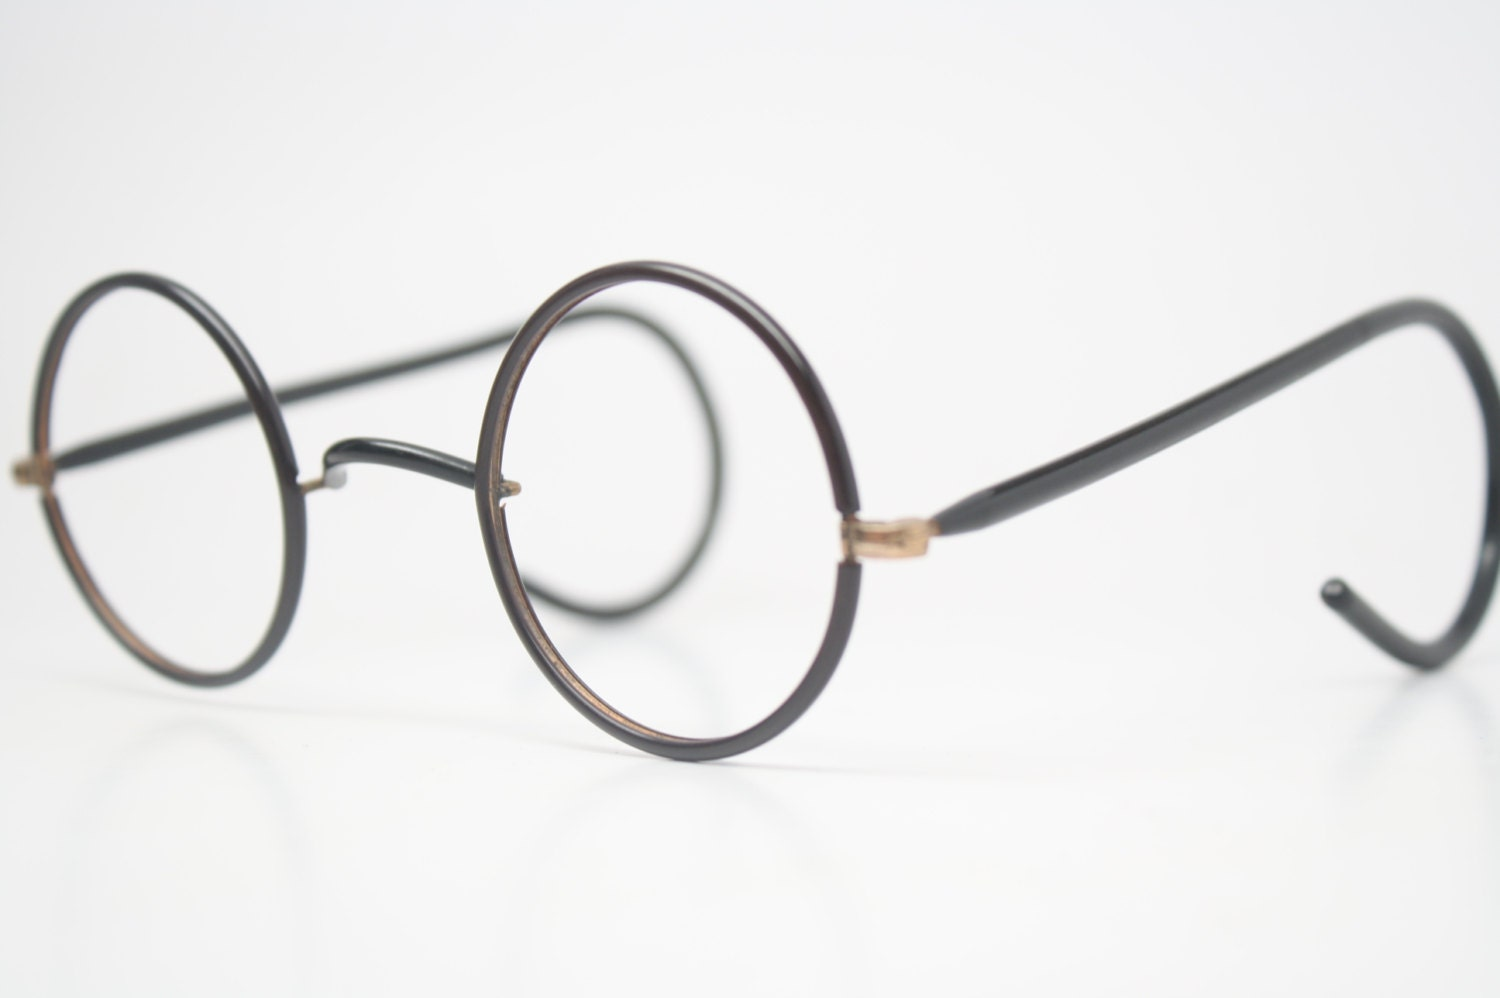 Eyeglass Frames Fairview Heights Il : Antique Eyeglasses Black & Gold Zyl Windsor Glasses New Old